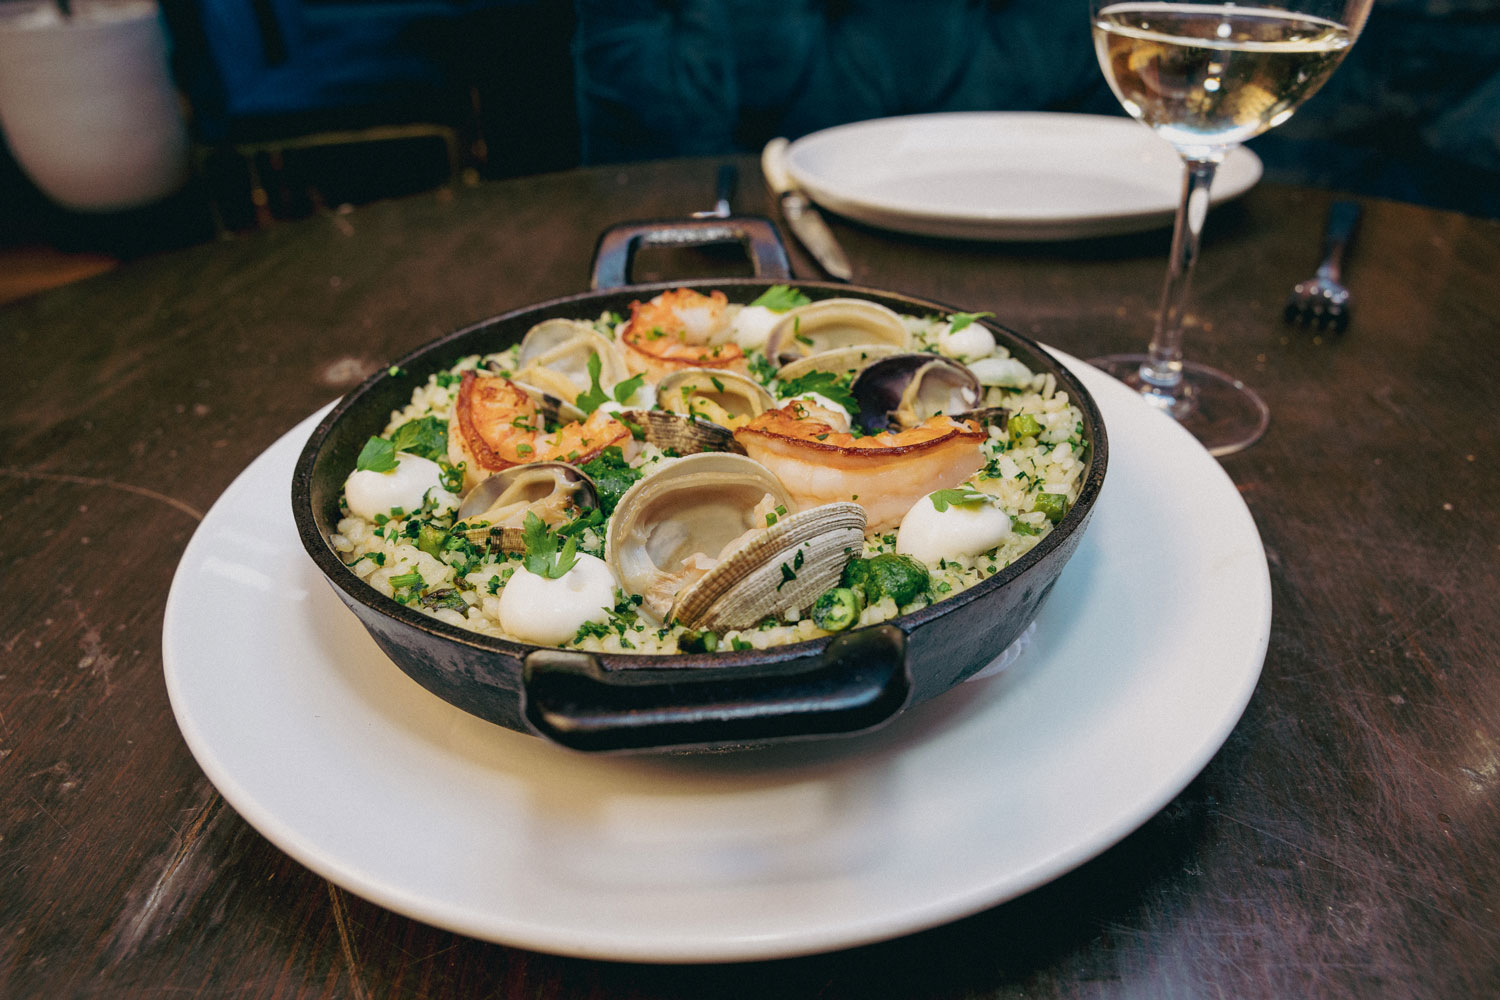 Tomiño, Spanish restaurant in Manhattan, is transforming what it means to serve Spanish food. Learn about Tomiño and other Spanish restaurants in New York.